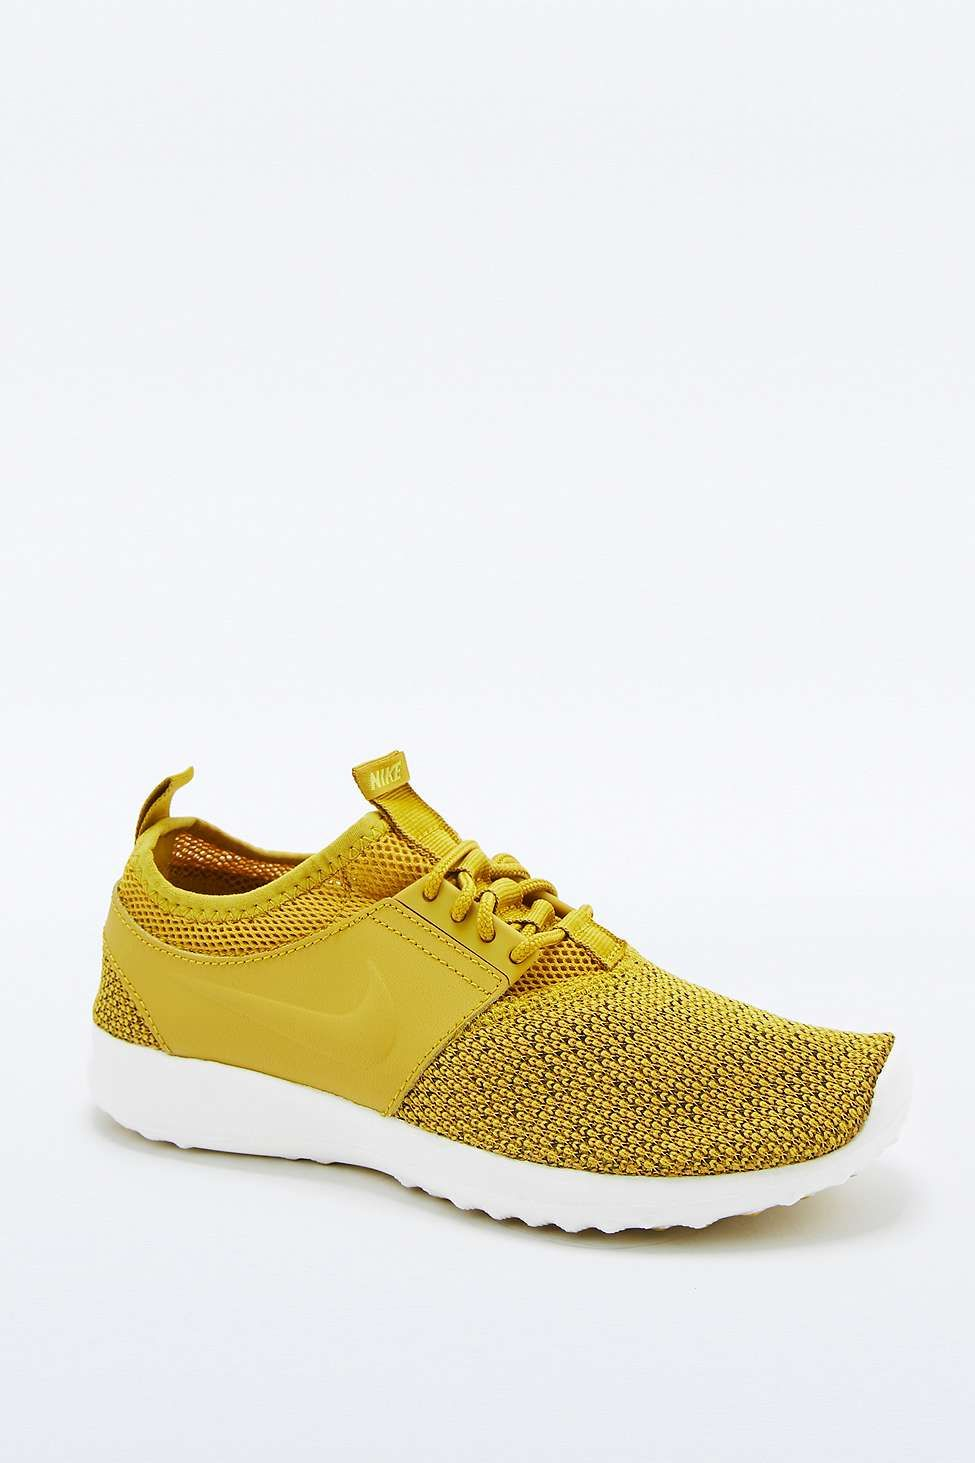 I am Obsessed with these trainers Nike Juvenate Mustard Trainers